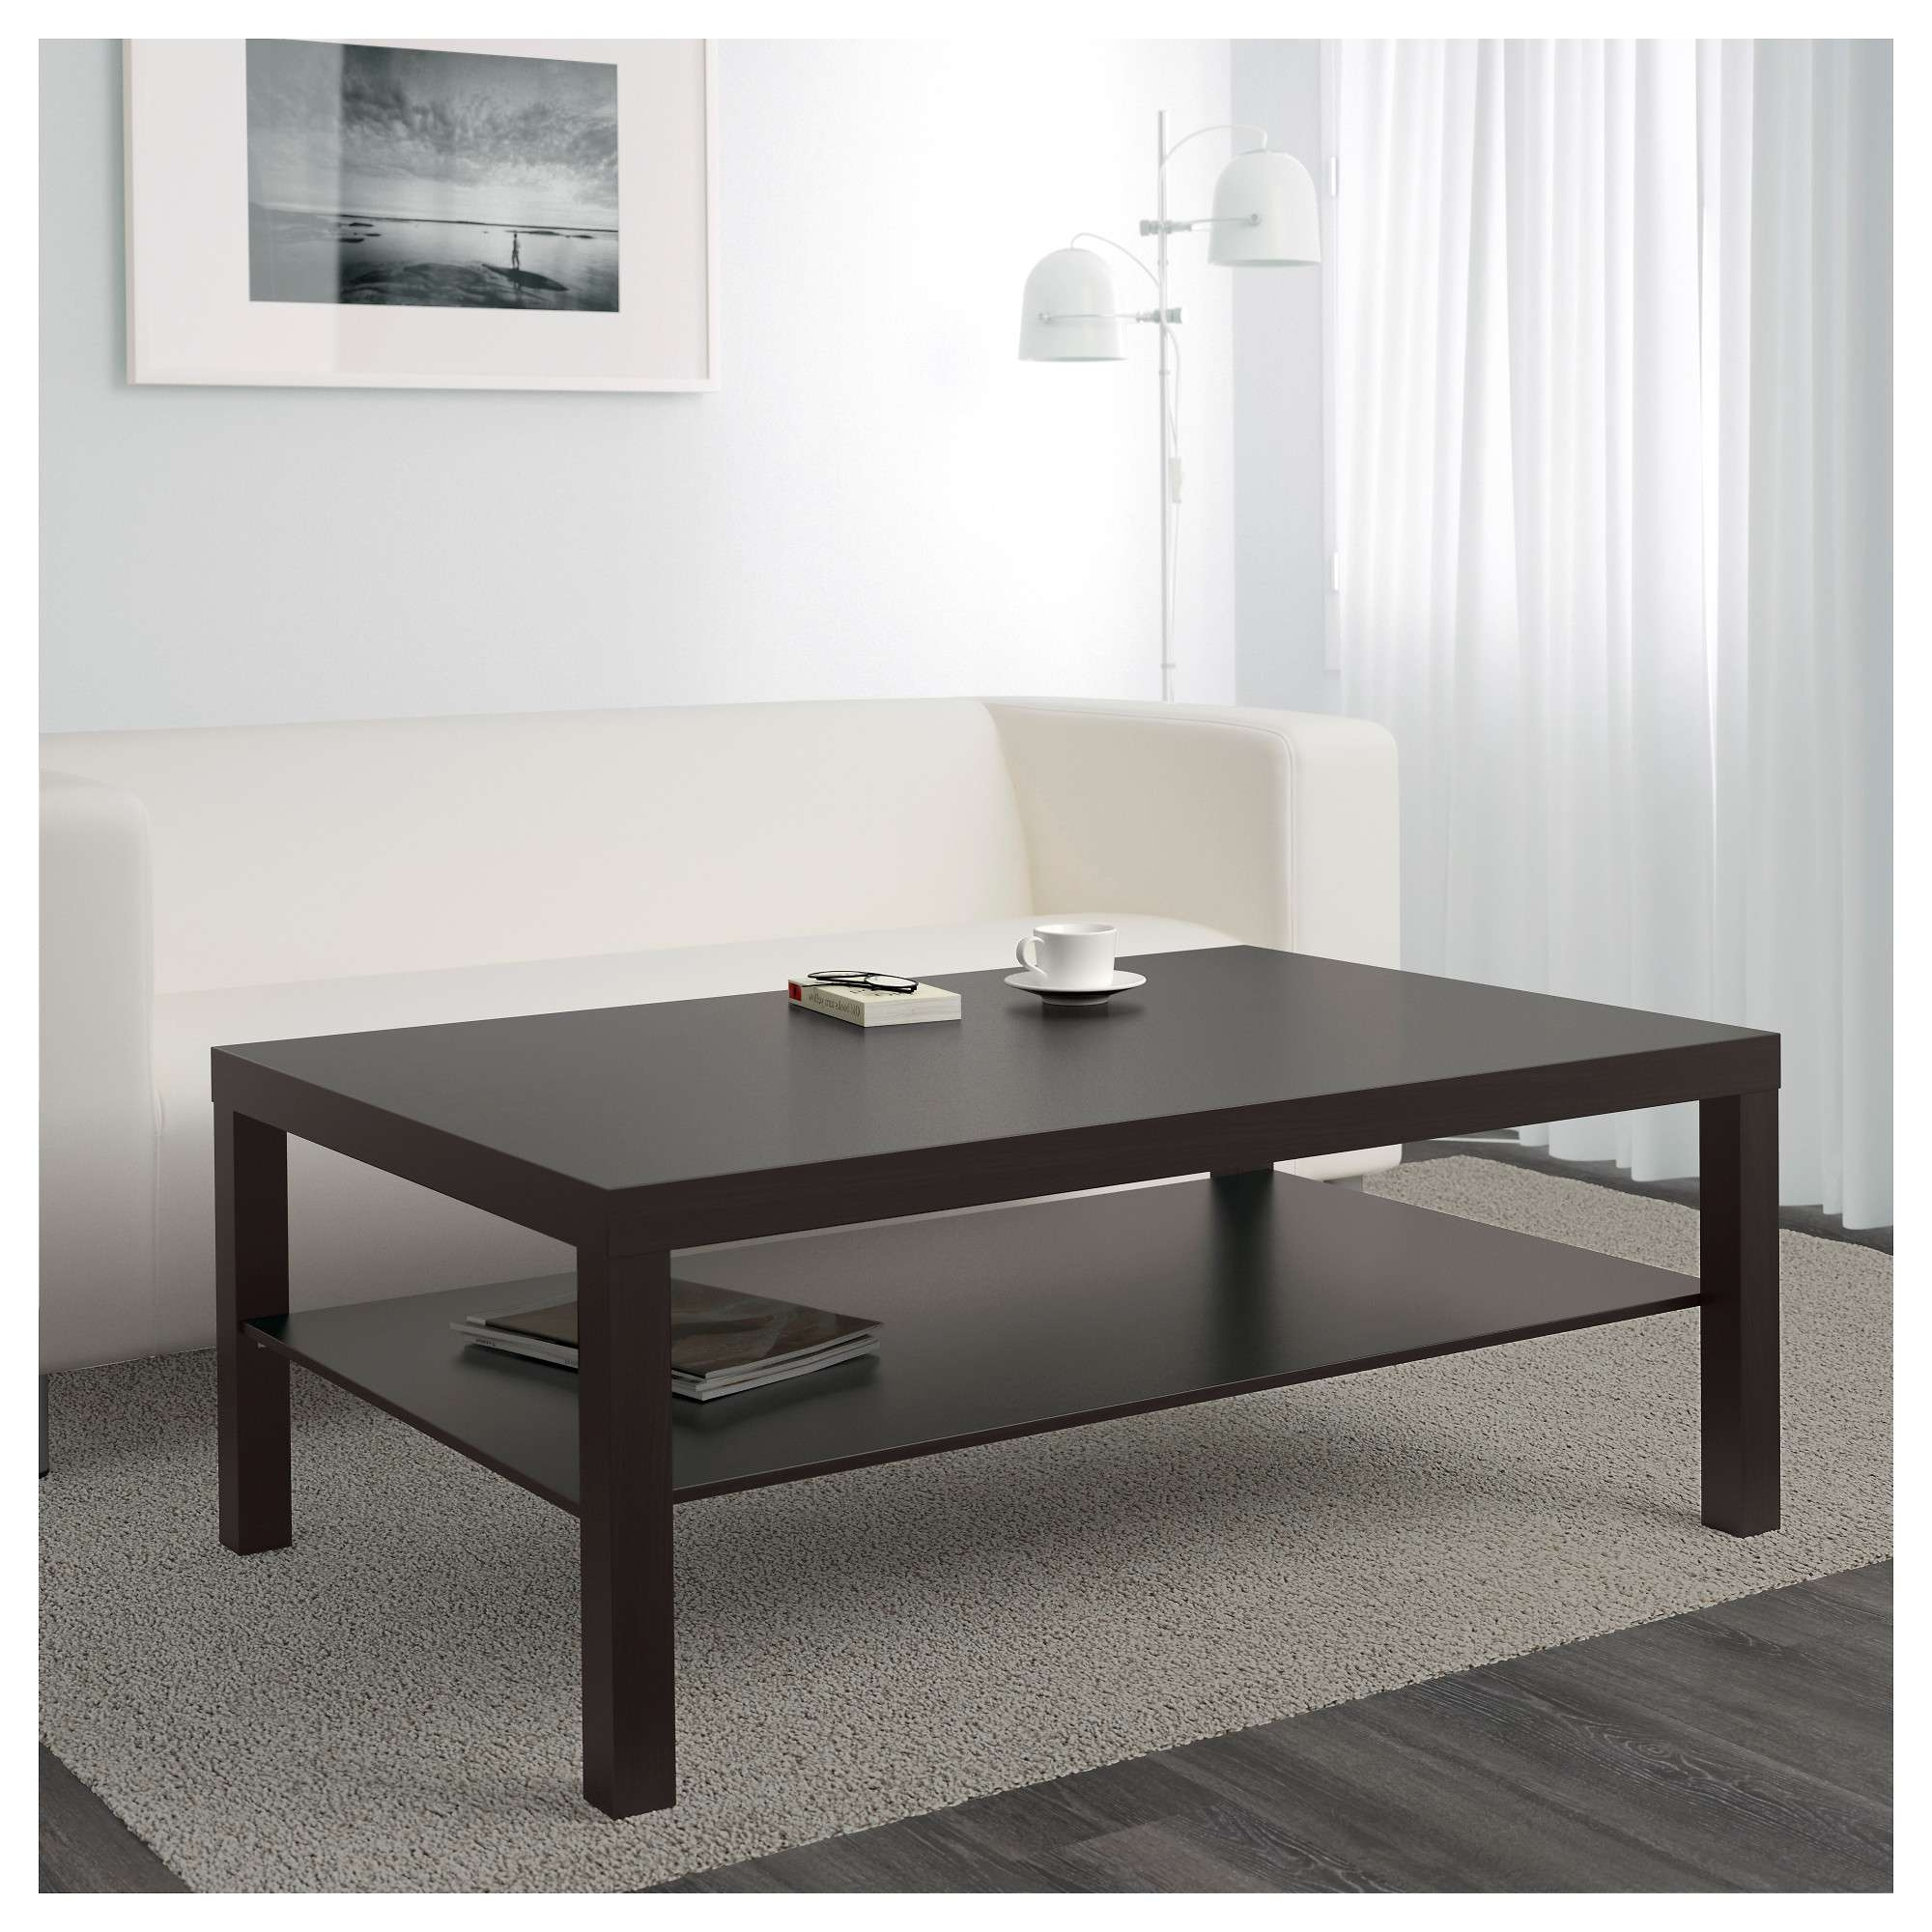 Newest Dark Brown Coffee Tables Within Lack Coffee Table – Black Brown – Ikea (View 20 of 20)